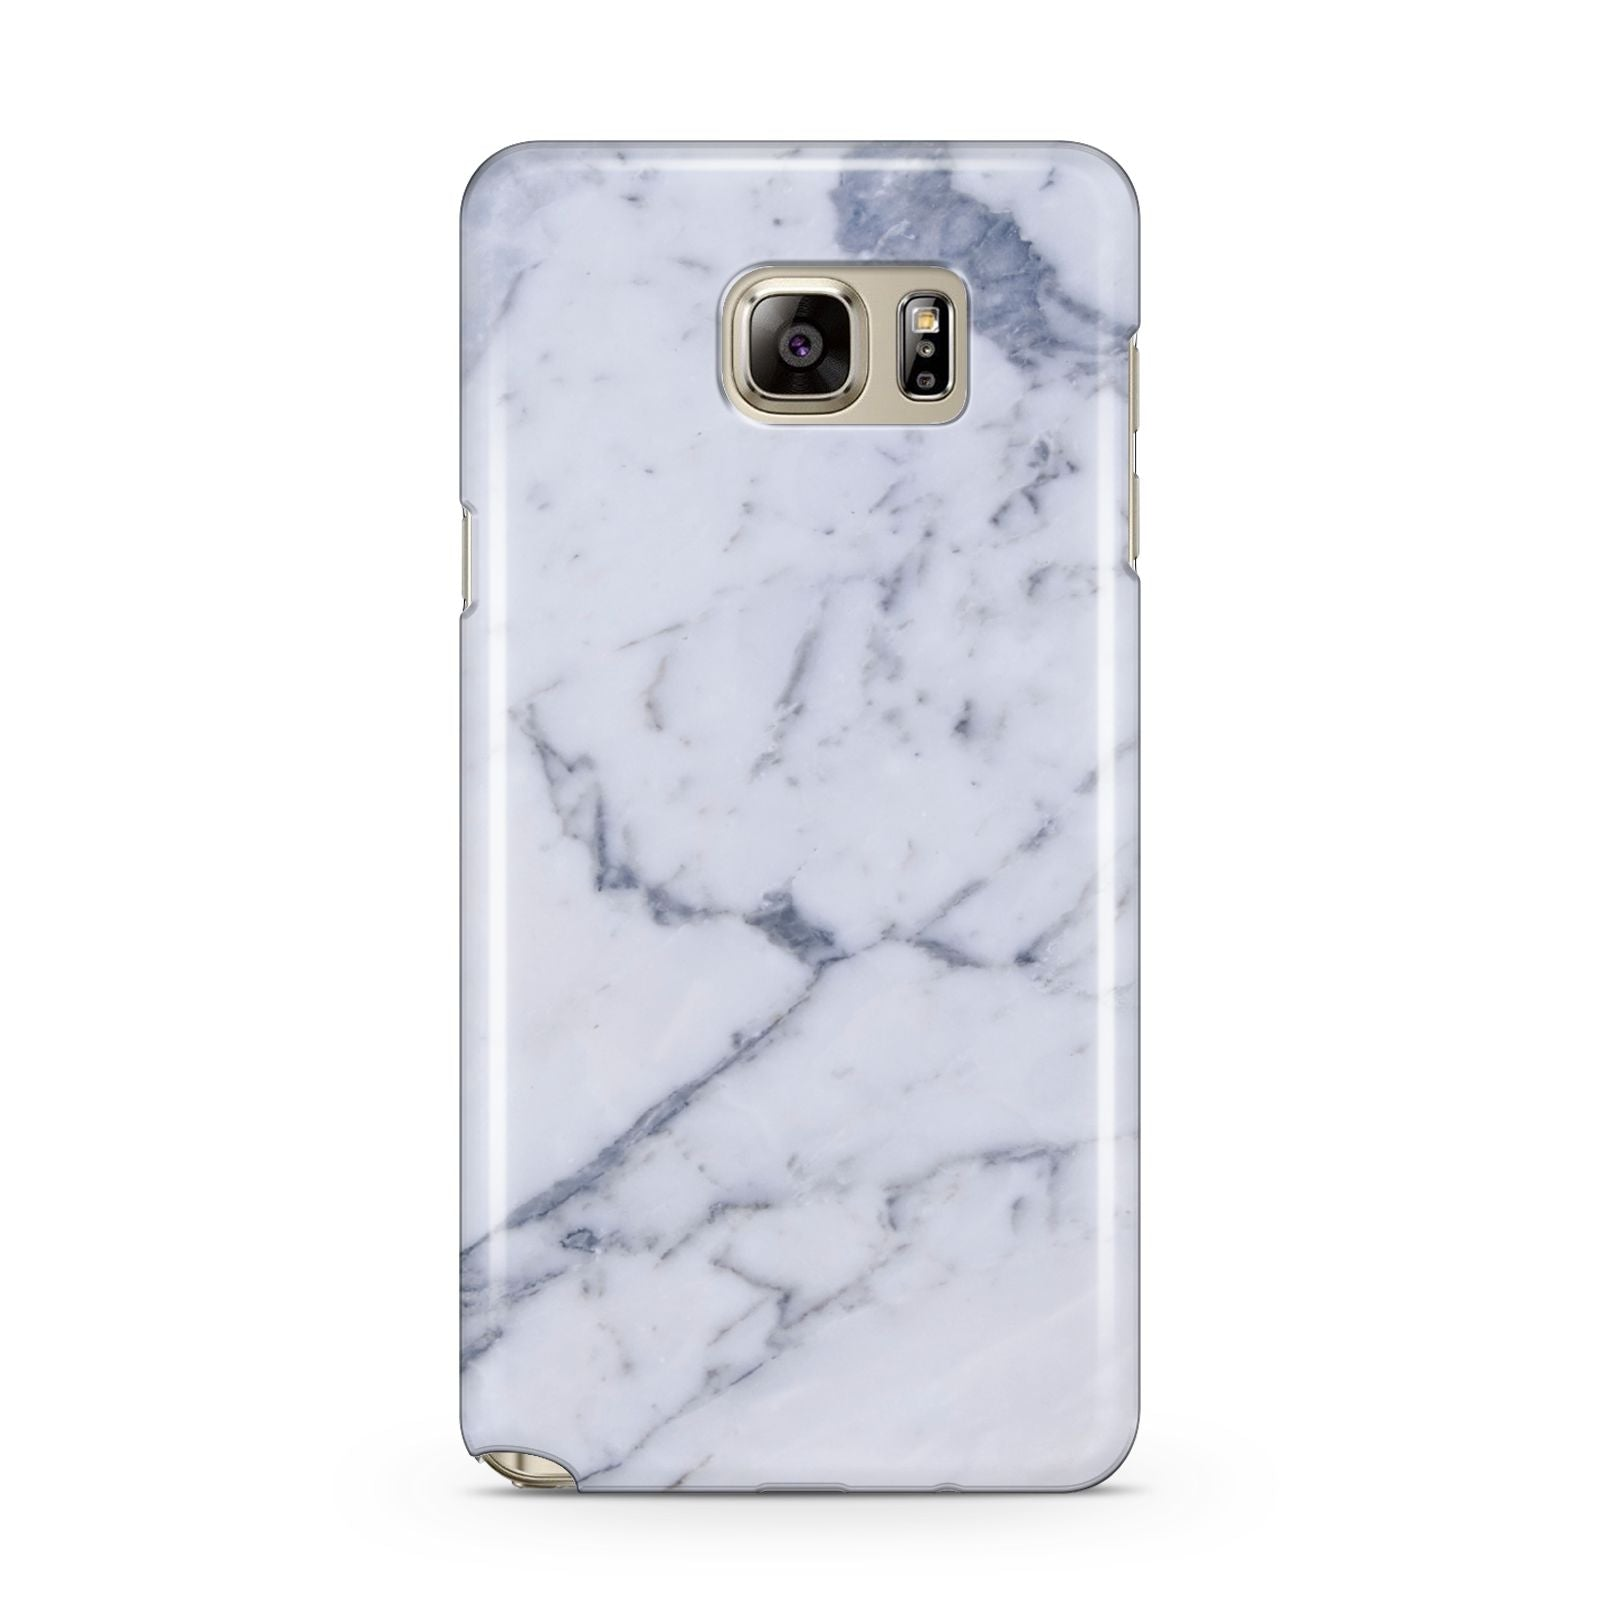 Faux Marble Grey White Samsung Galaxy Note 5 Case